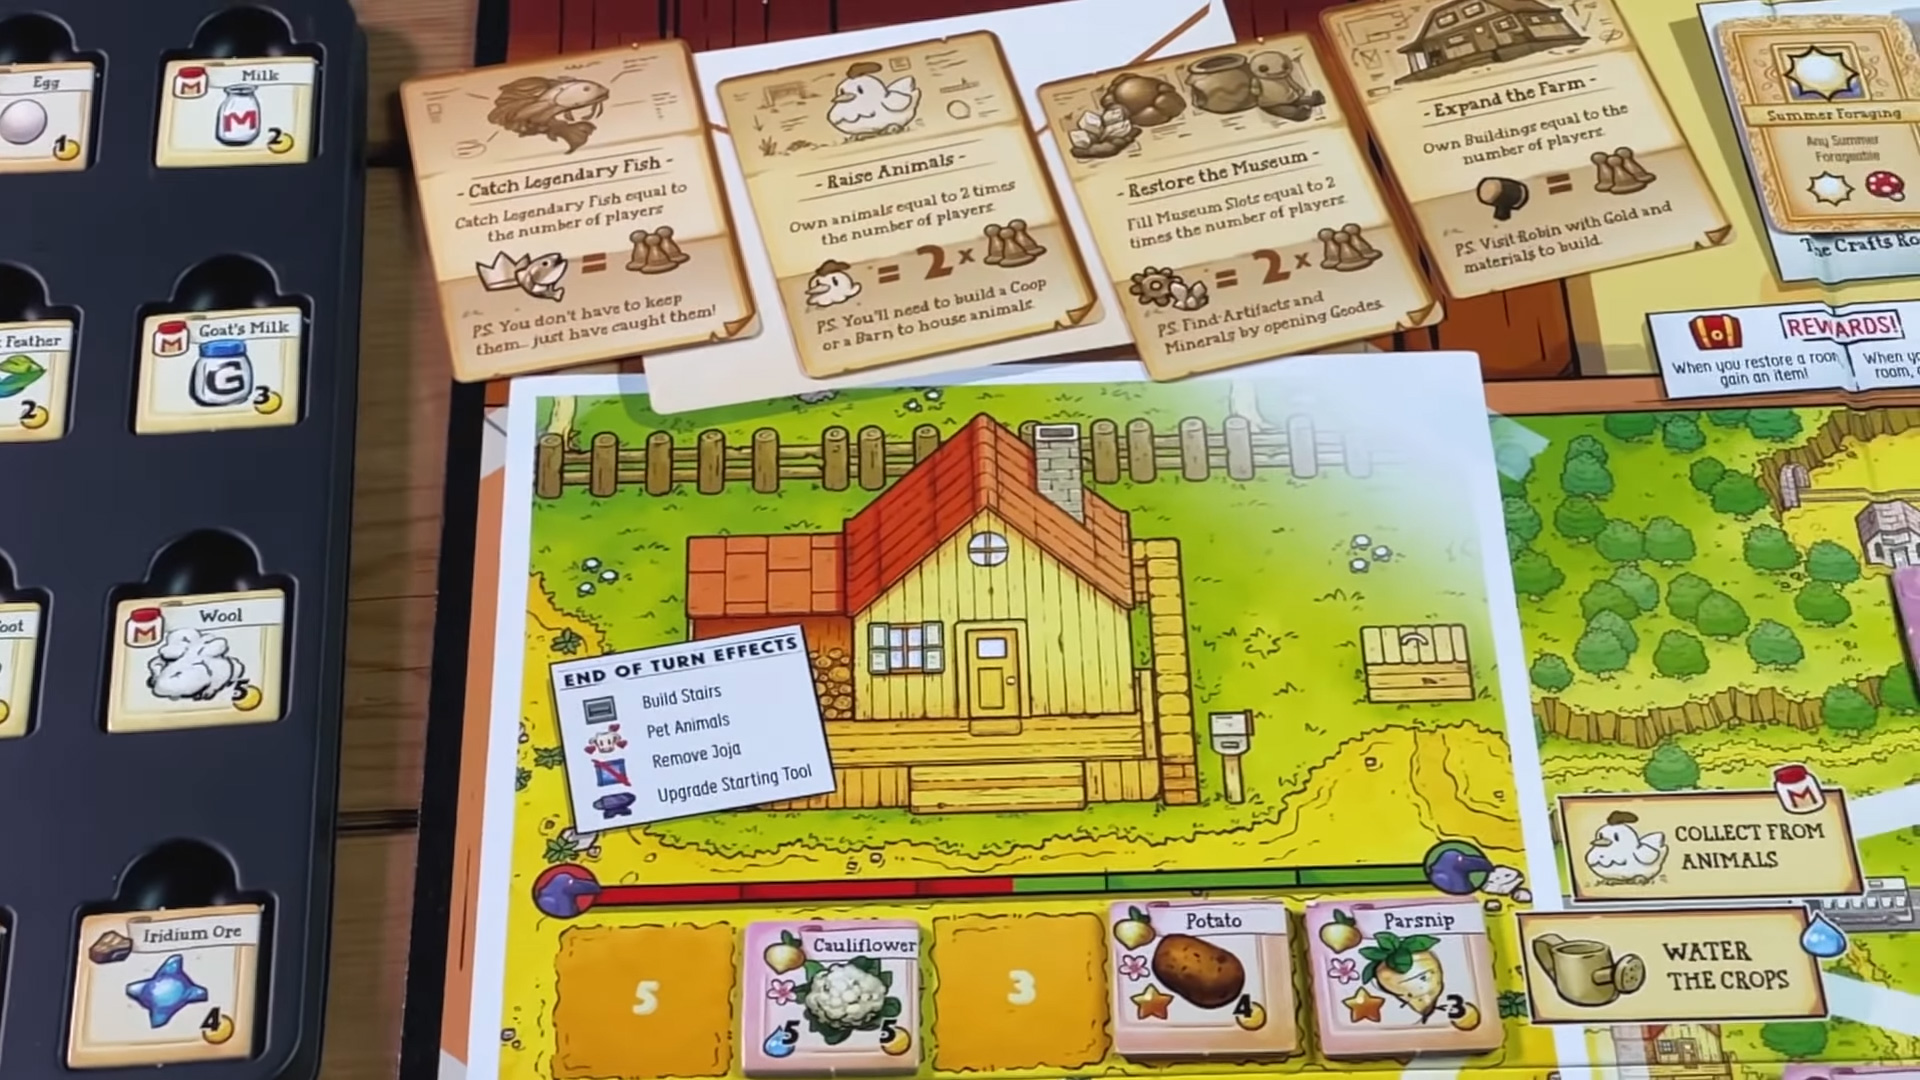 They condensed Pelican Town into a board game.